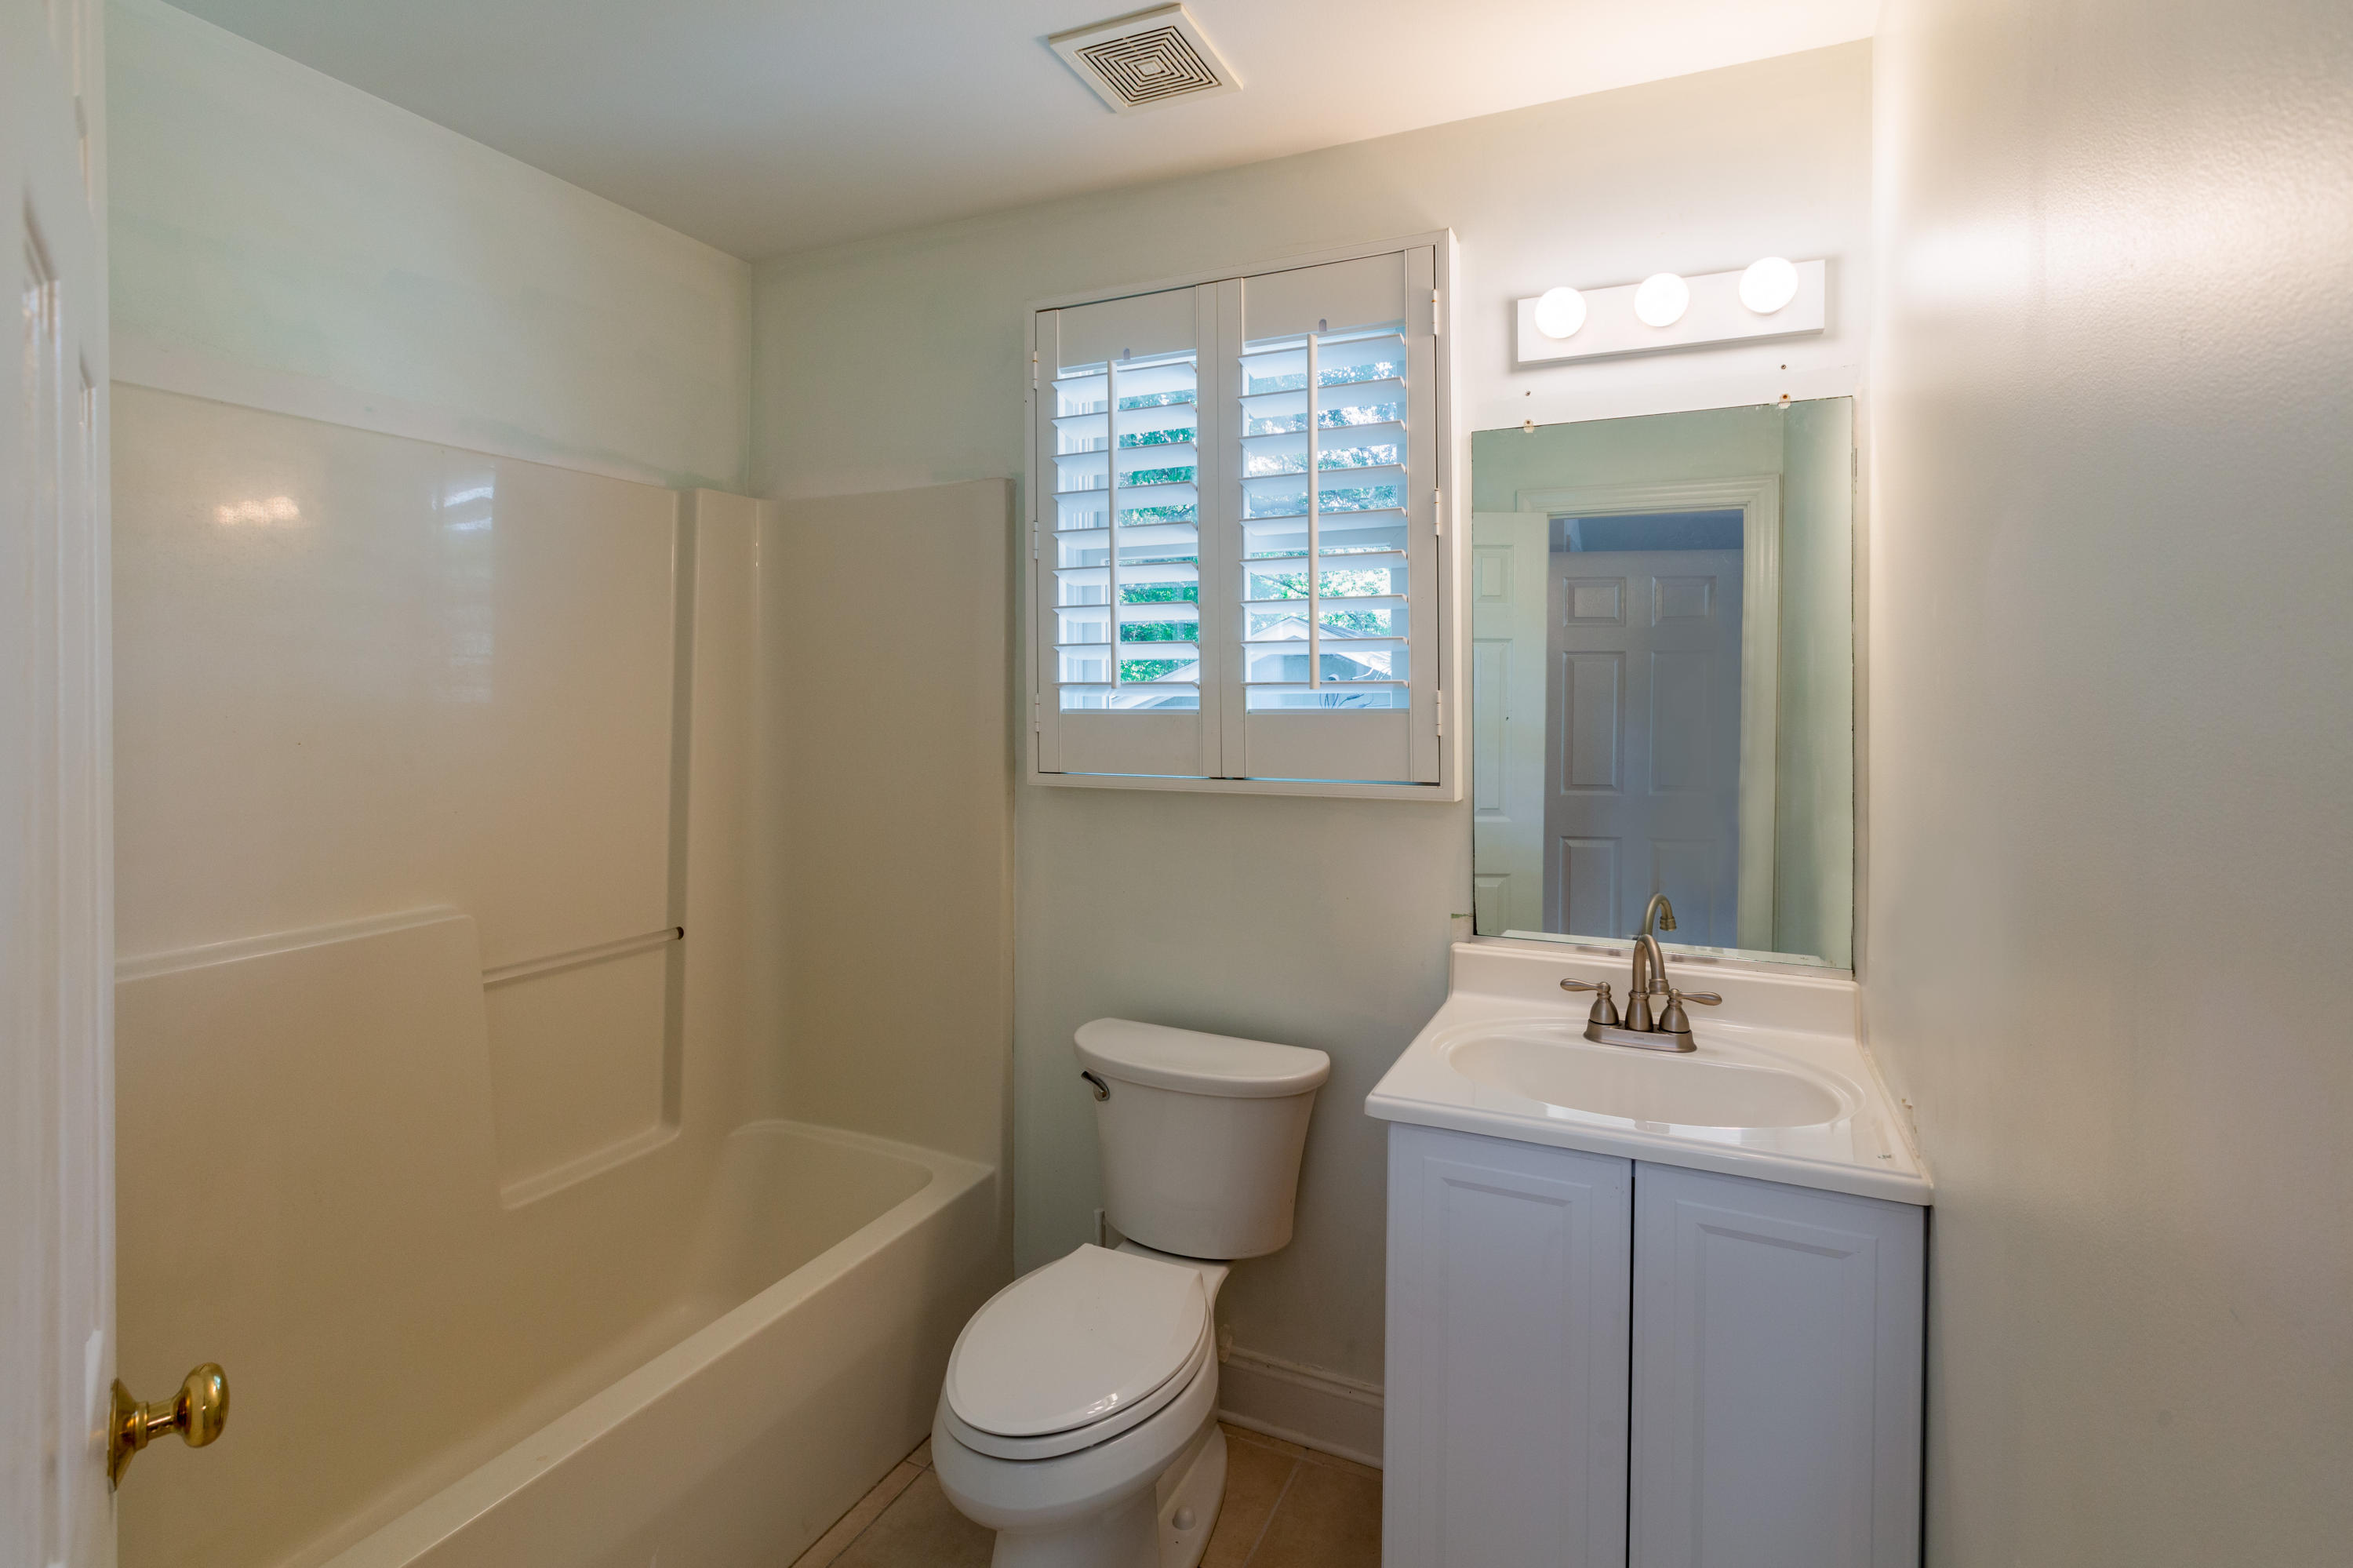 Riverland Terrace Homes For Sale - 2115 Welch, Charleston, SC - 0